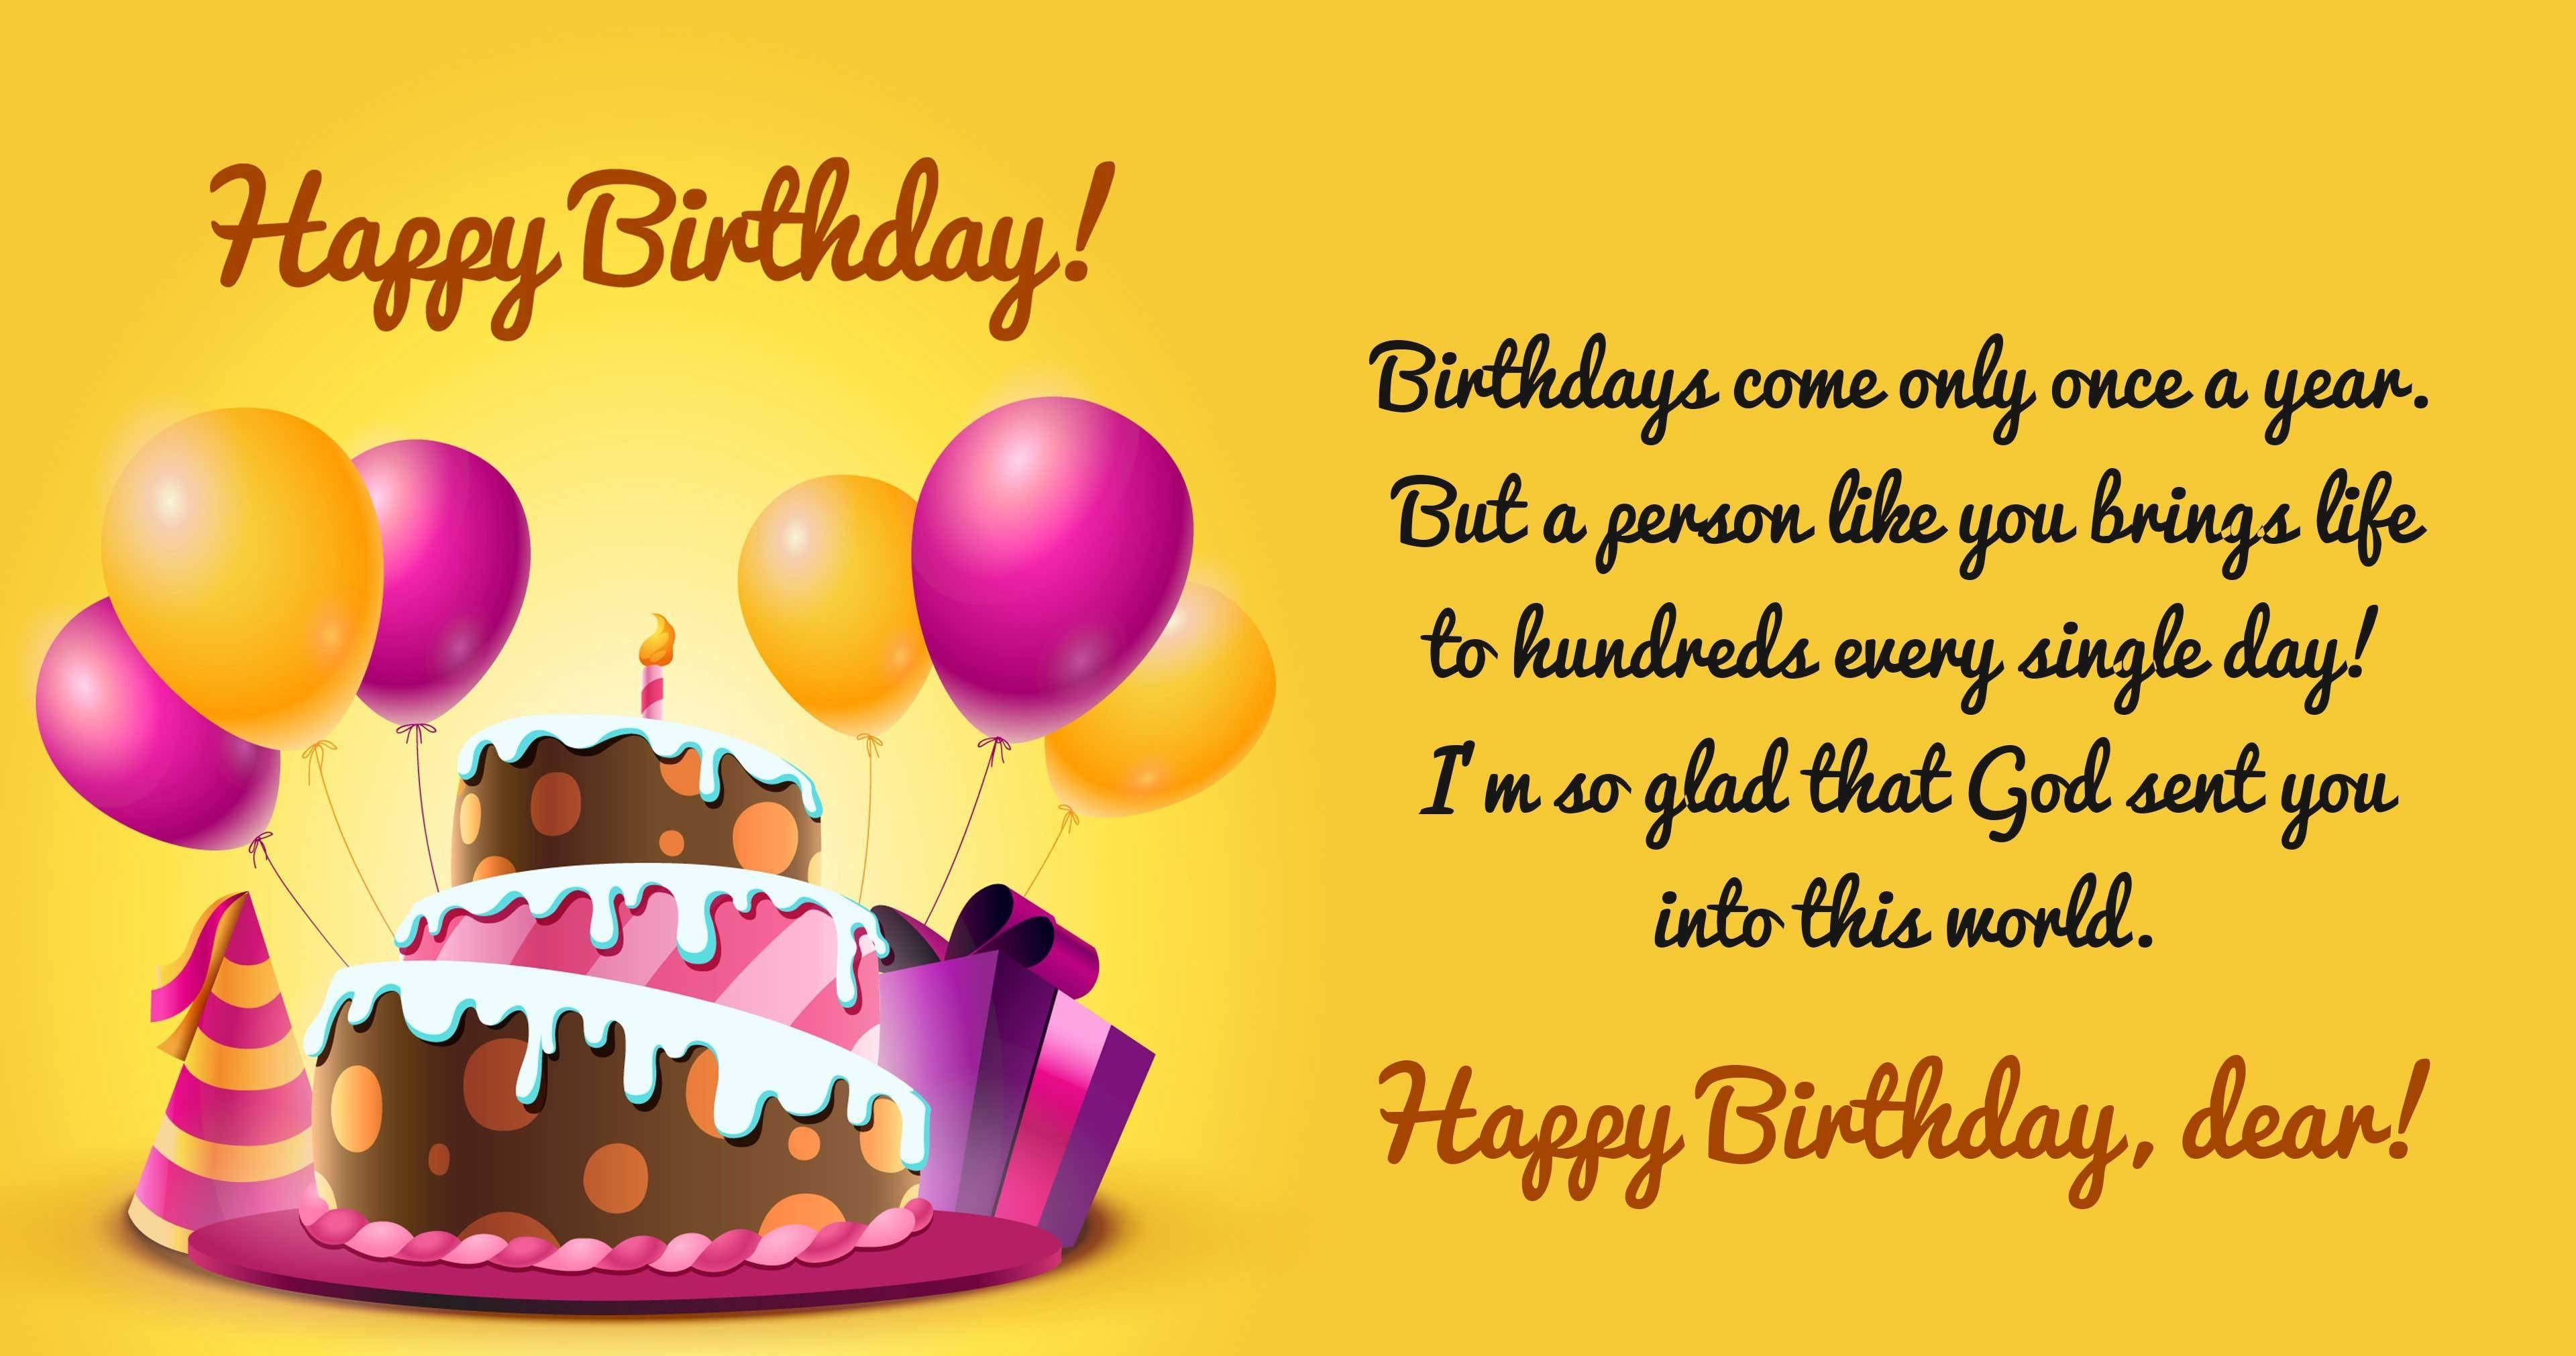 In This Post We Have To Shared Best Happy Birthday Cousin Quotes Wishes Bd Happy Birthday Cousin Happy Birthday Picture Quotes Inspirational Birthday Wishes